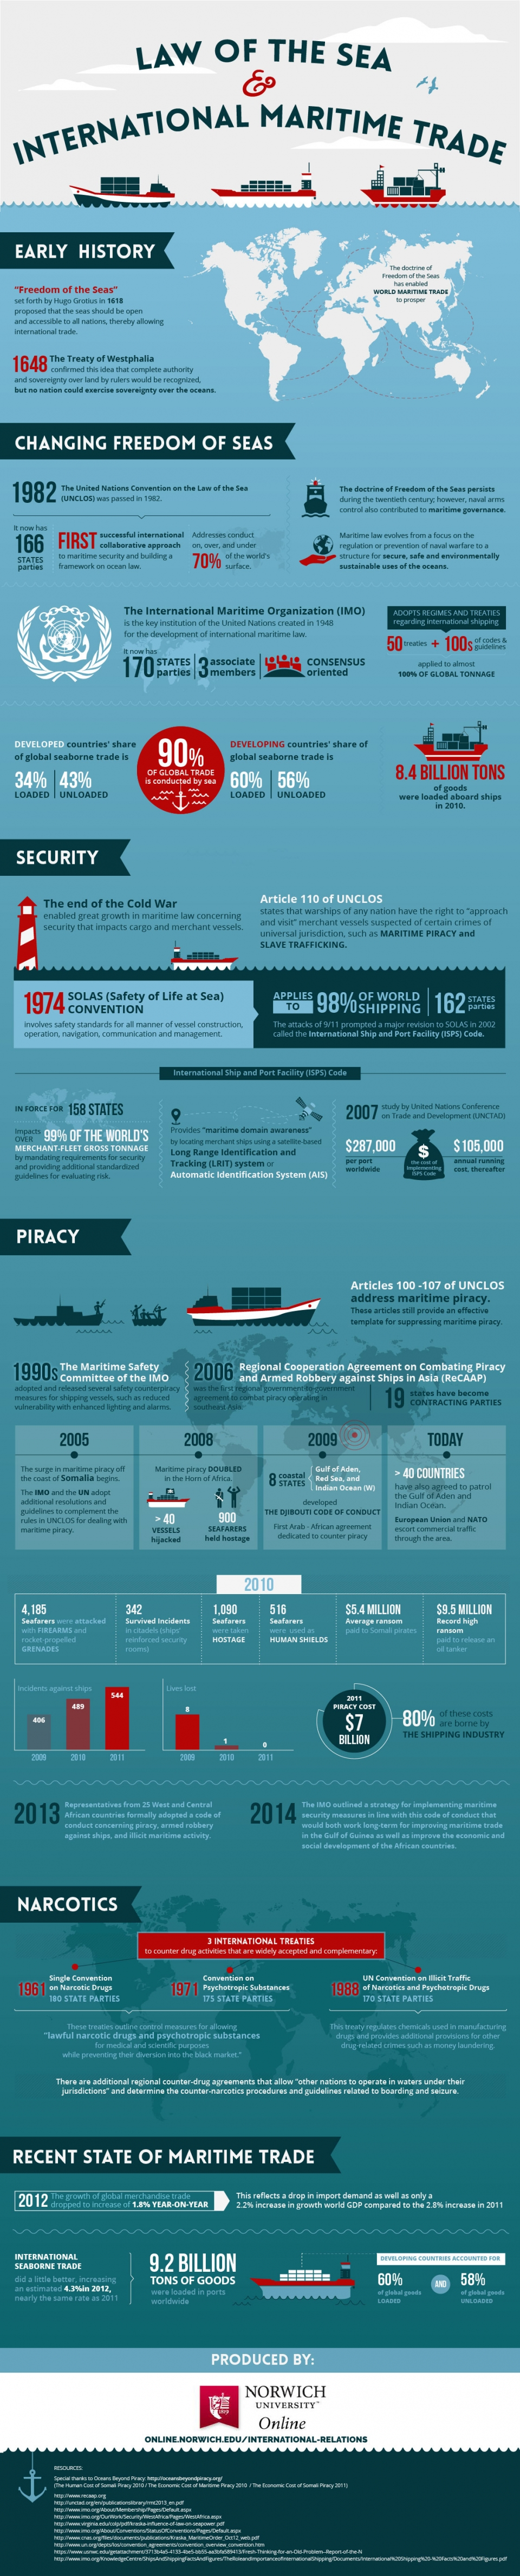 maritime trade infographic image